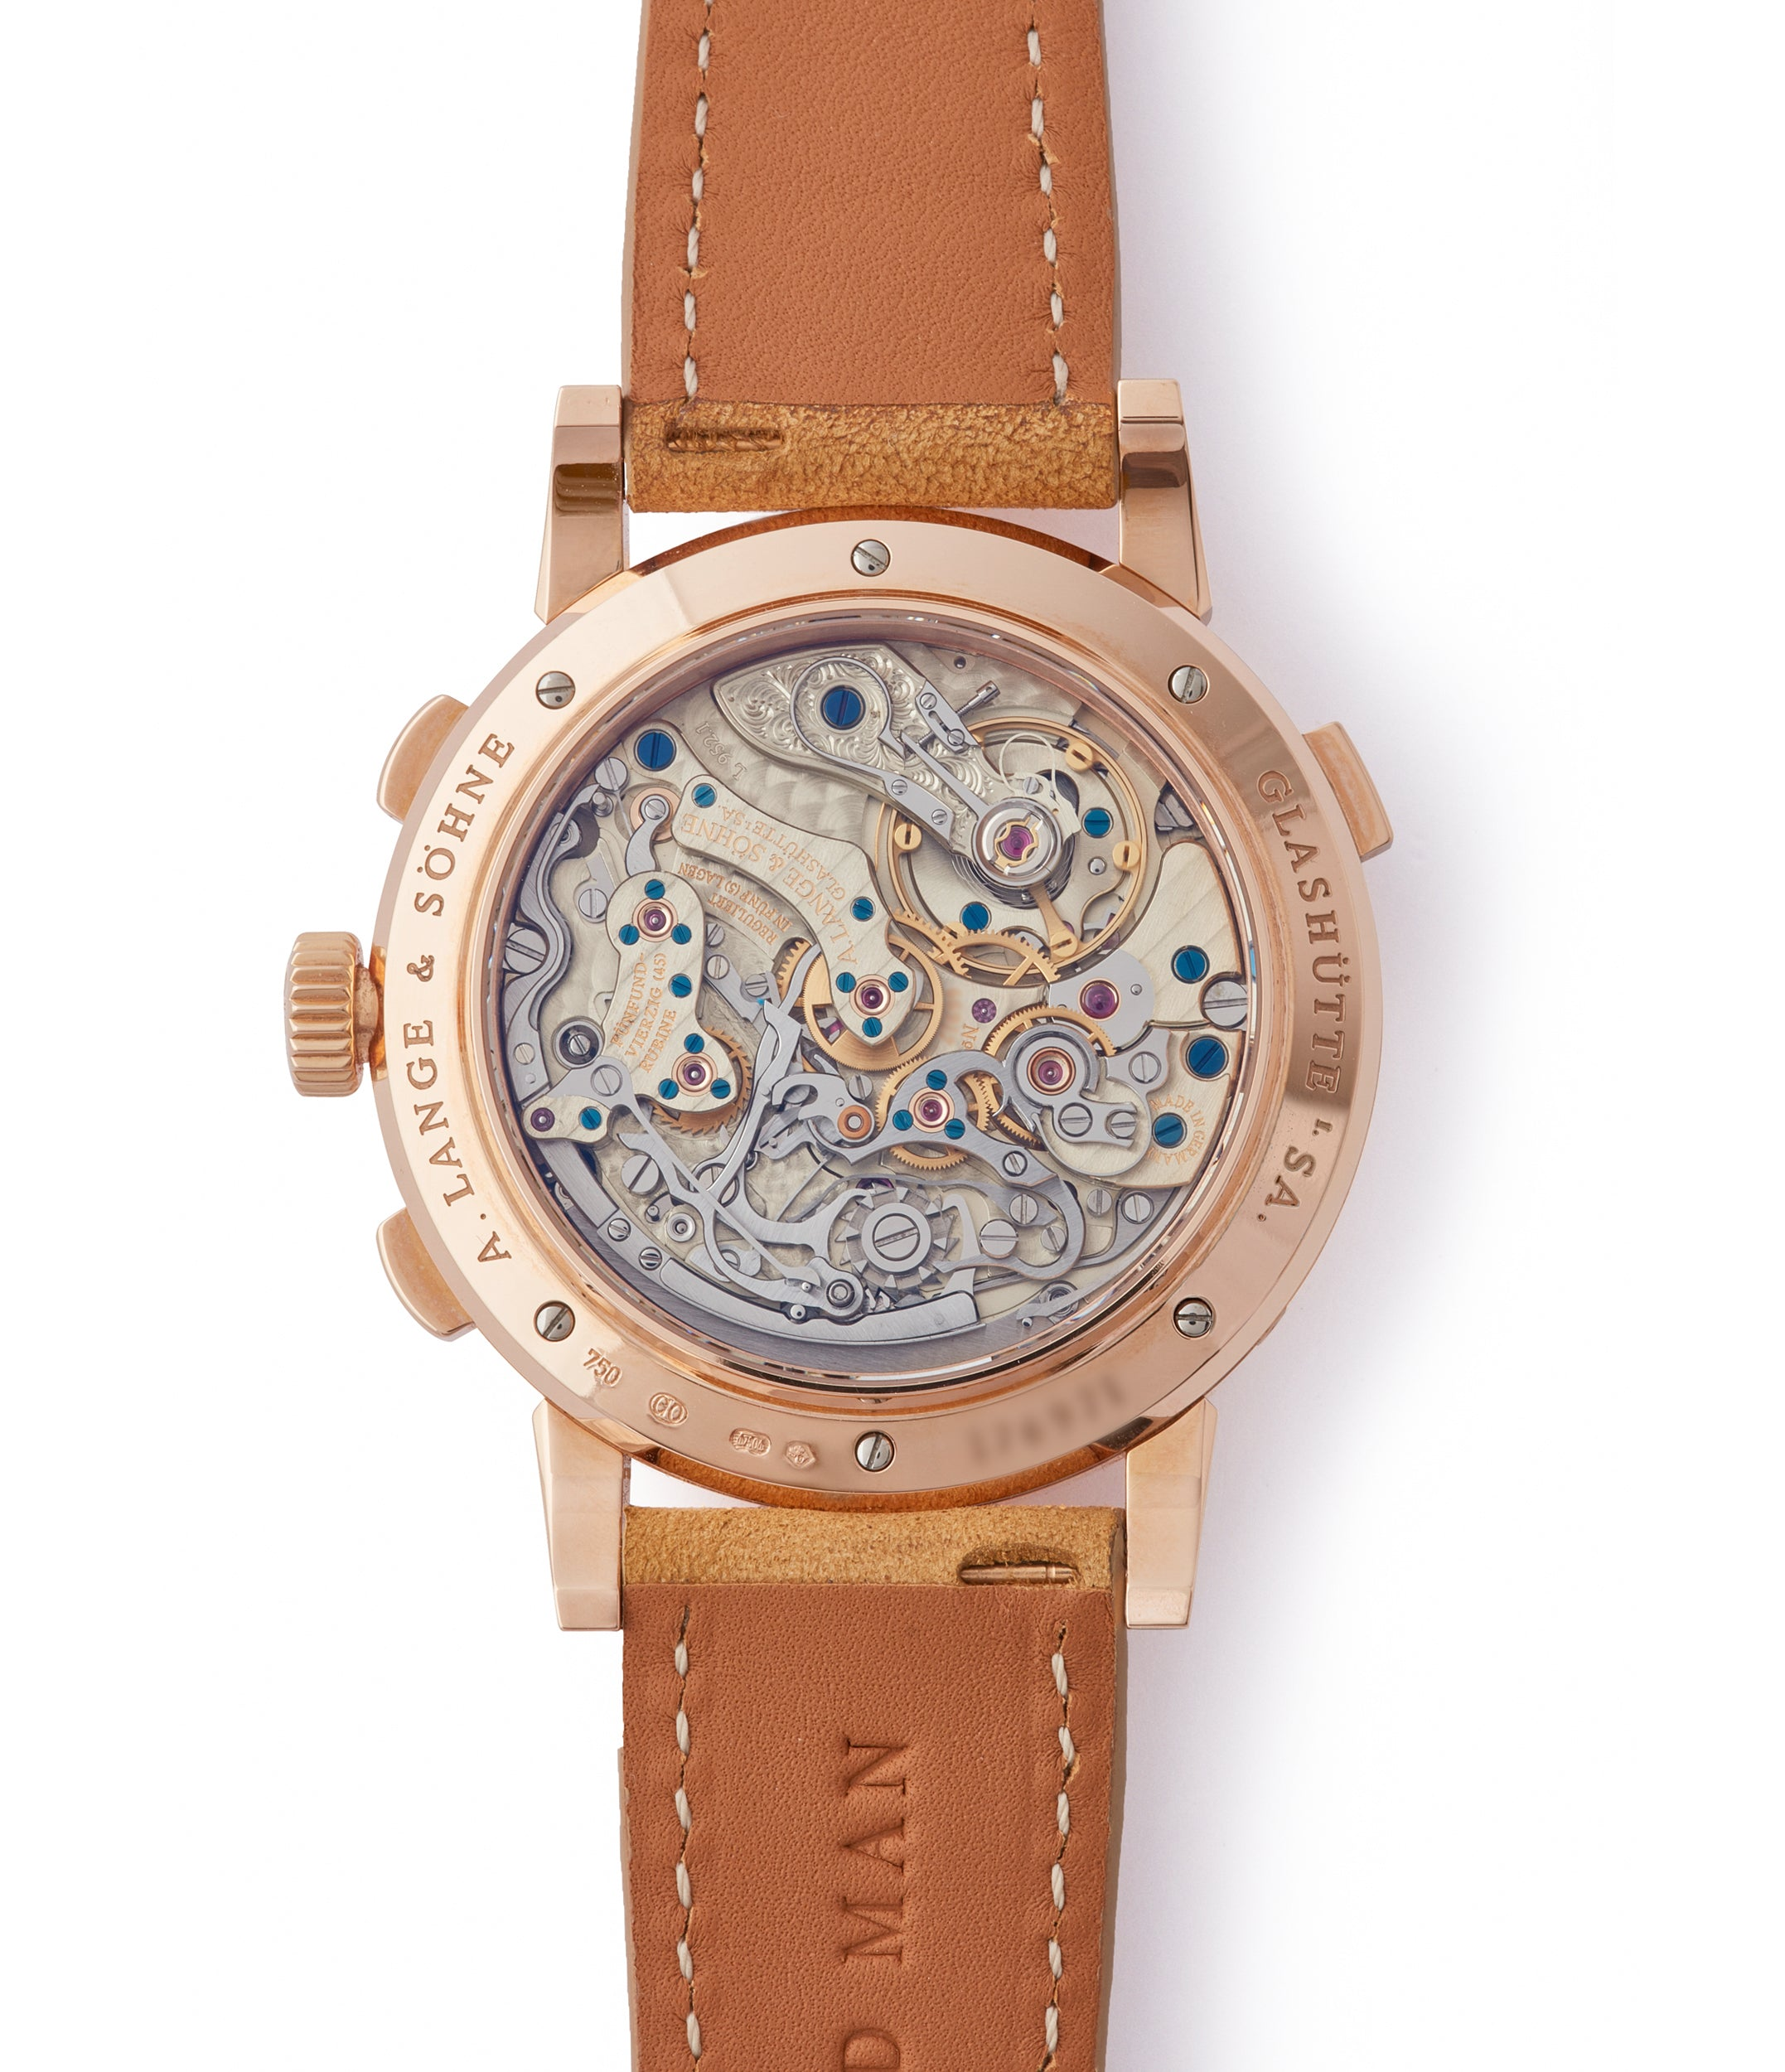 manual-winding German-made A. Lange & Sohne Datograph  Perpetual Calendar 410.032 pink gold pre-owned dress watch for sale online at A Collected Man London seller rare watches